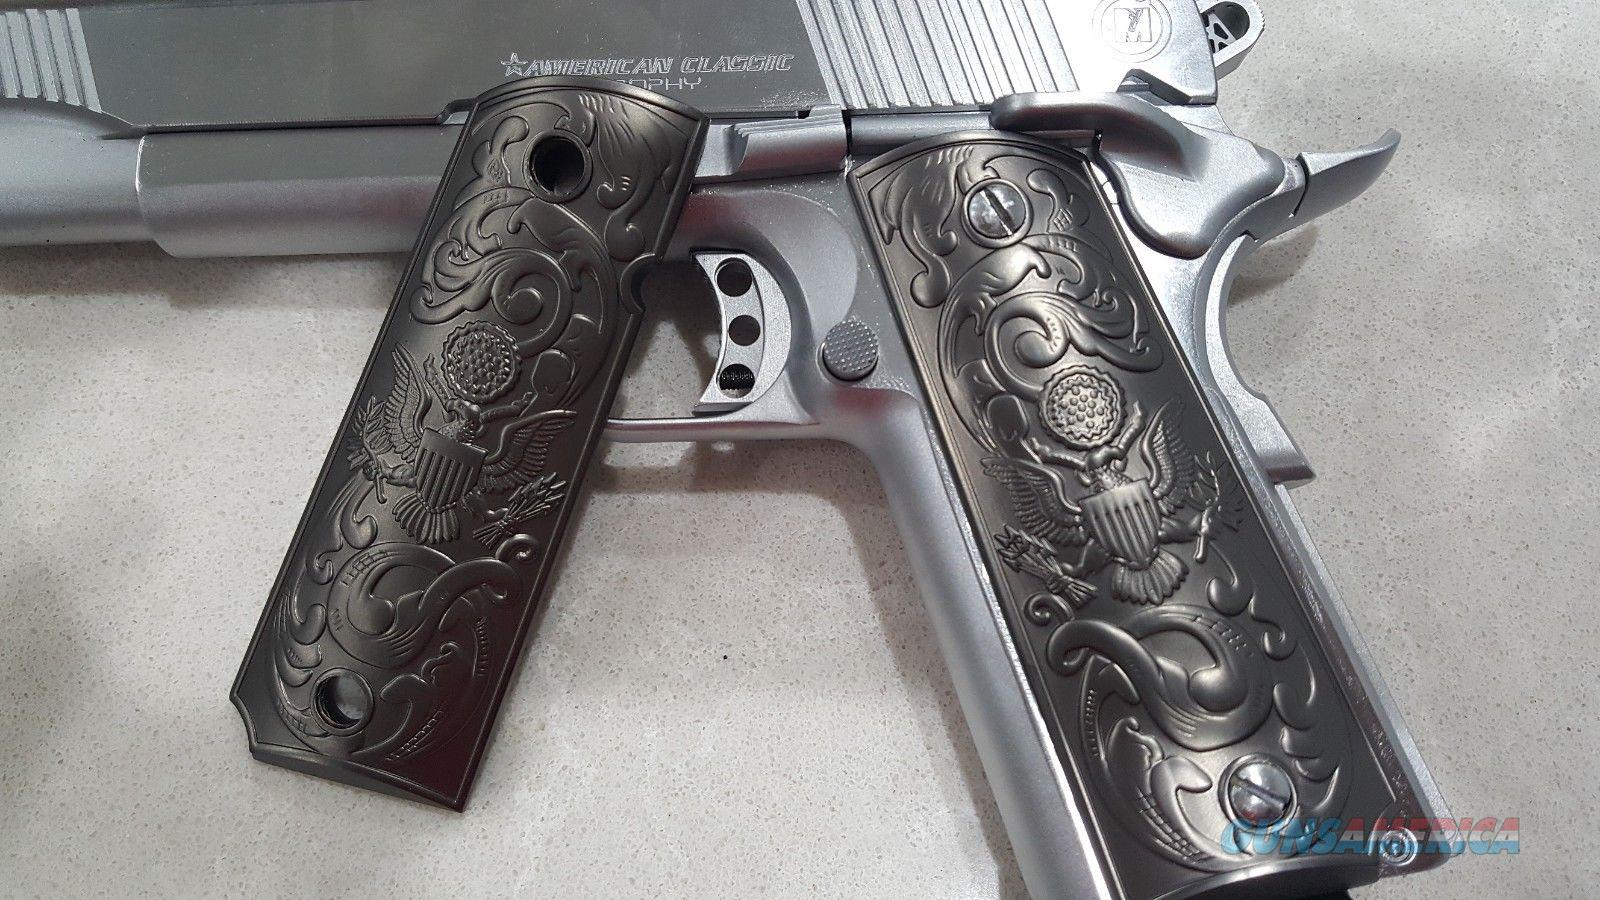 1911 Grips PISTOL METAL GRIPS Colt Full Size Government US Army Black